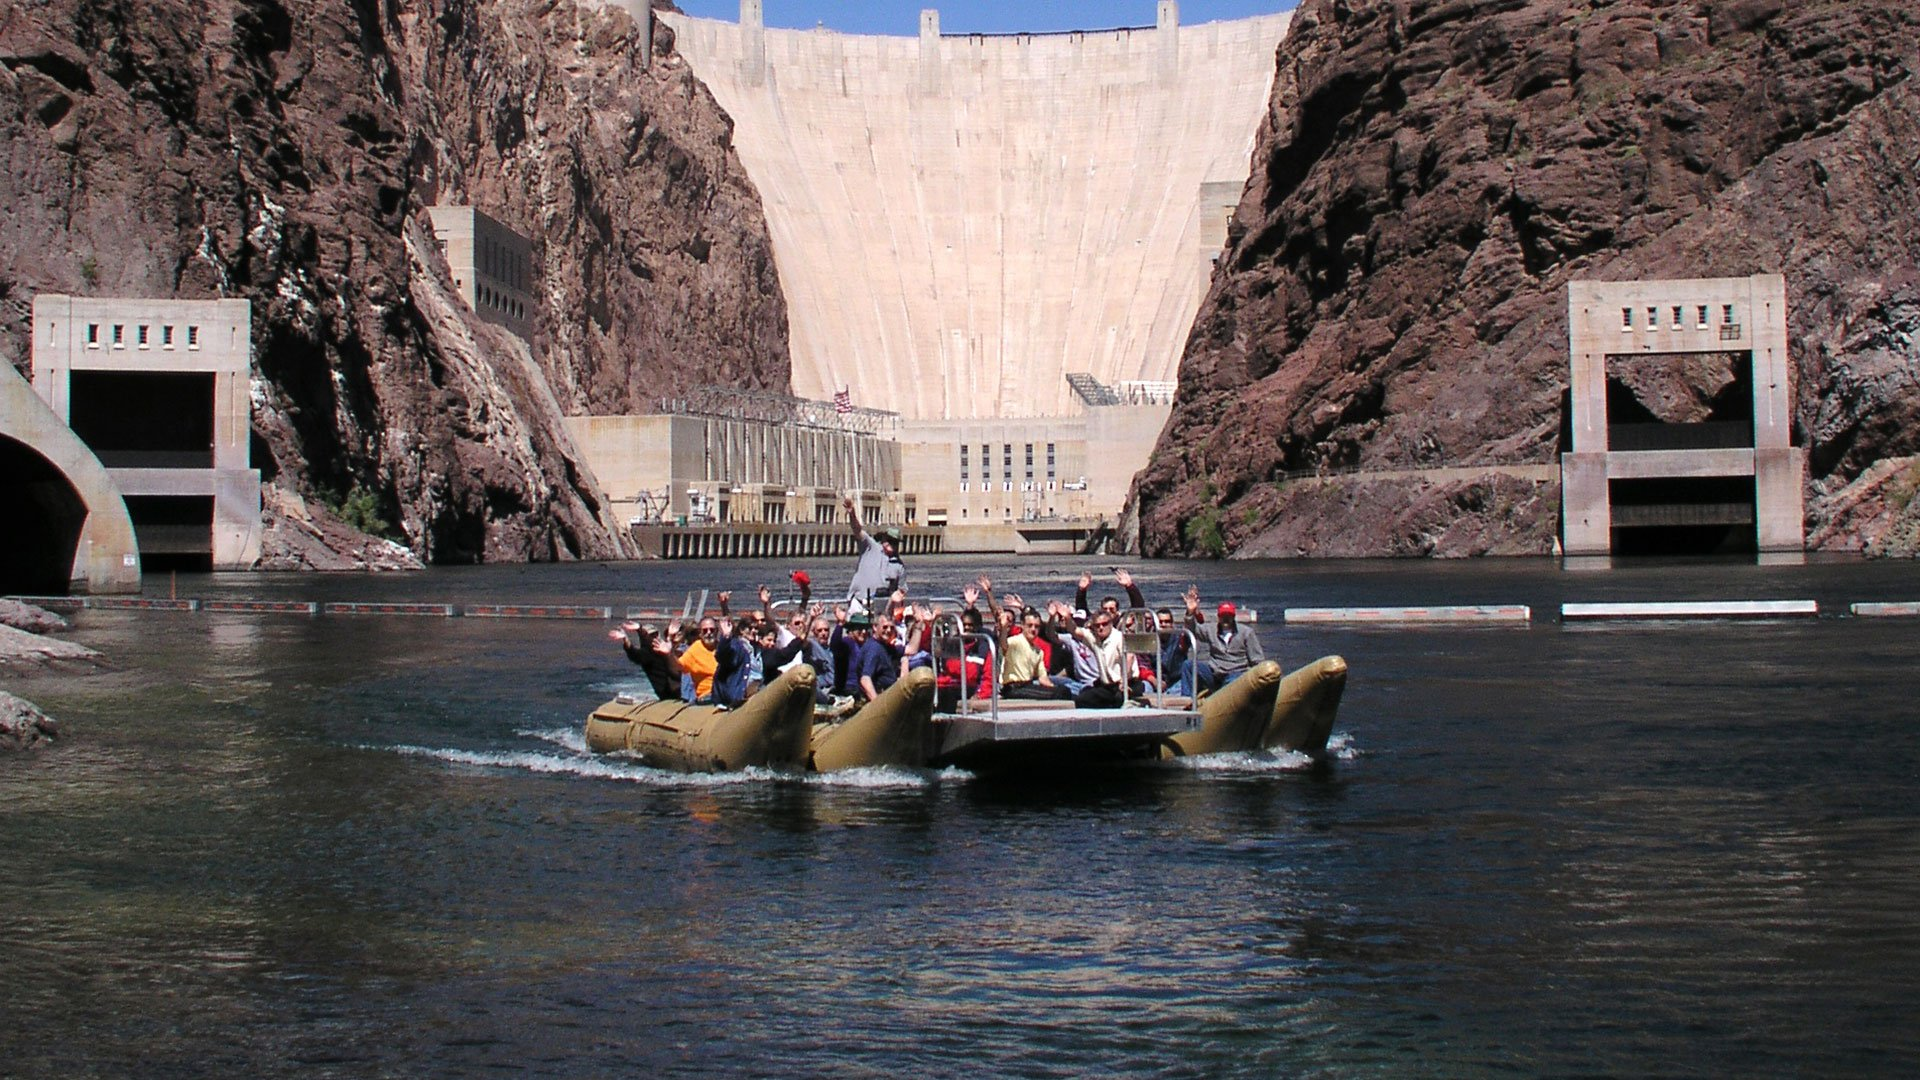 Passengers on a river raft with the Hoover Dam in the background.